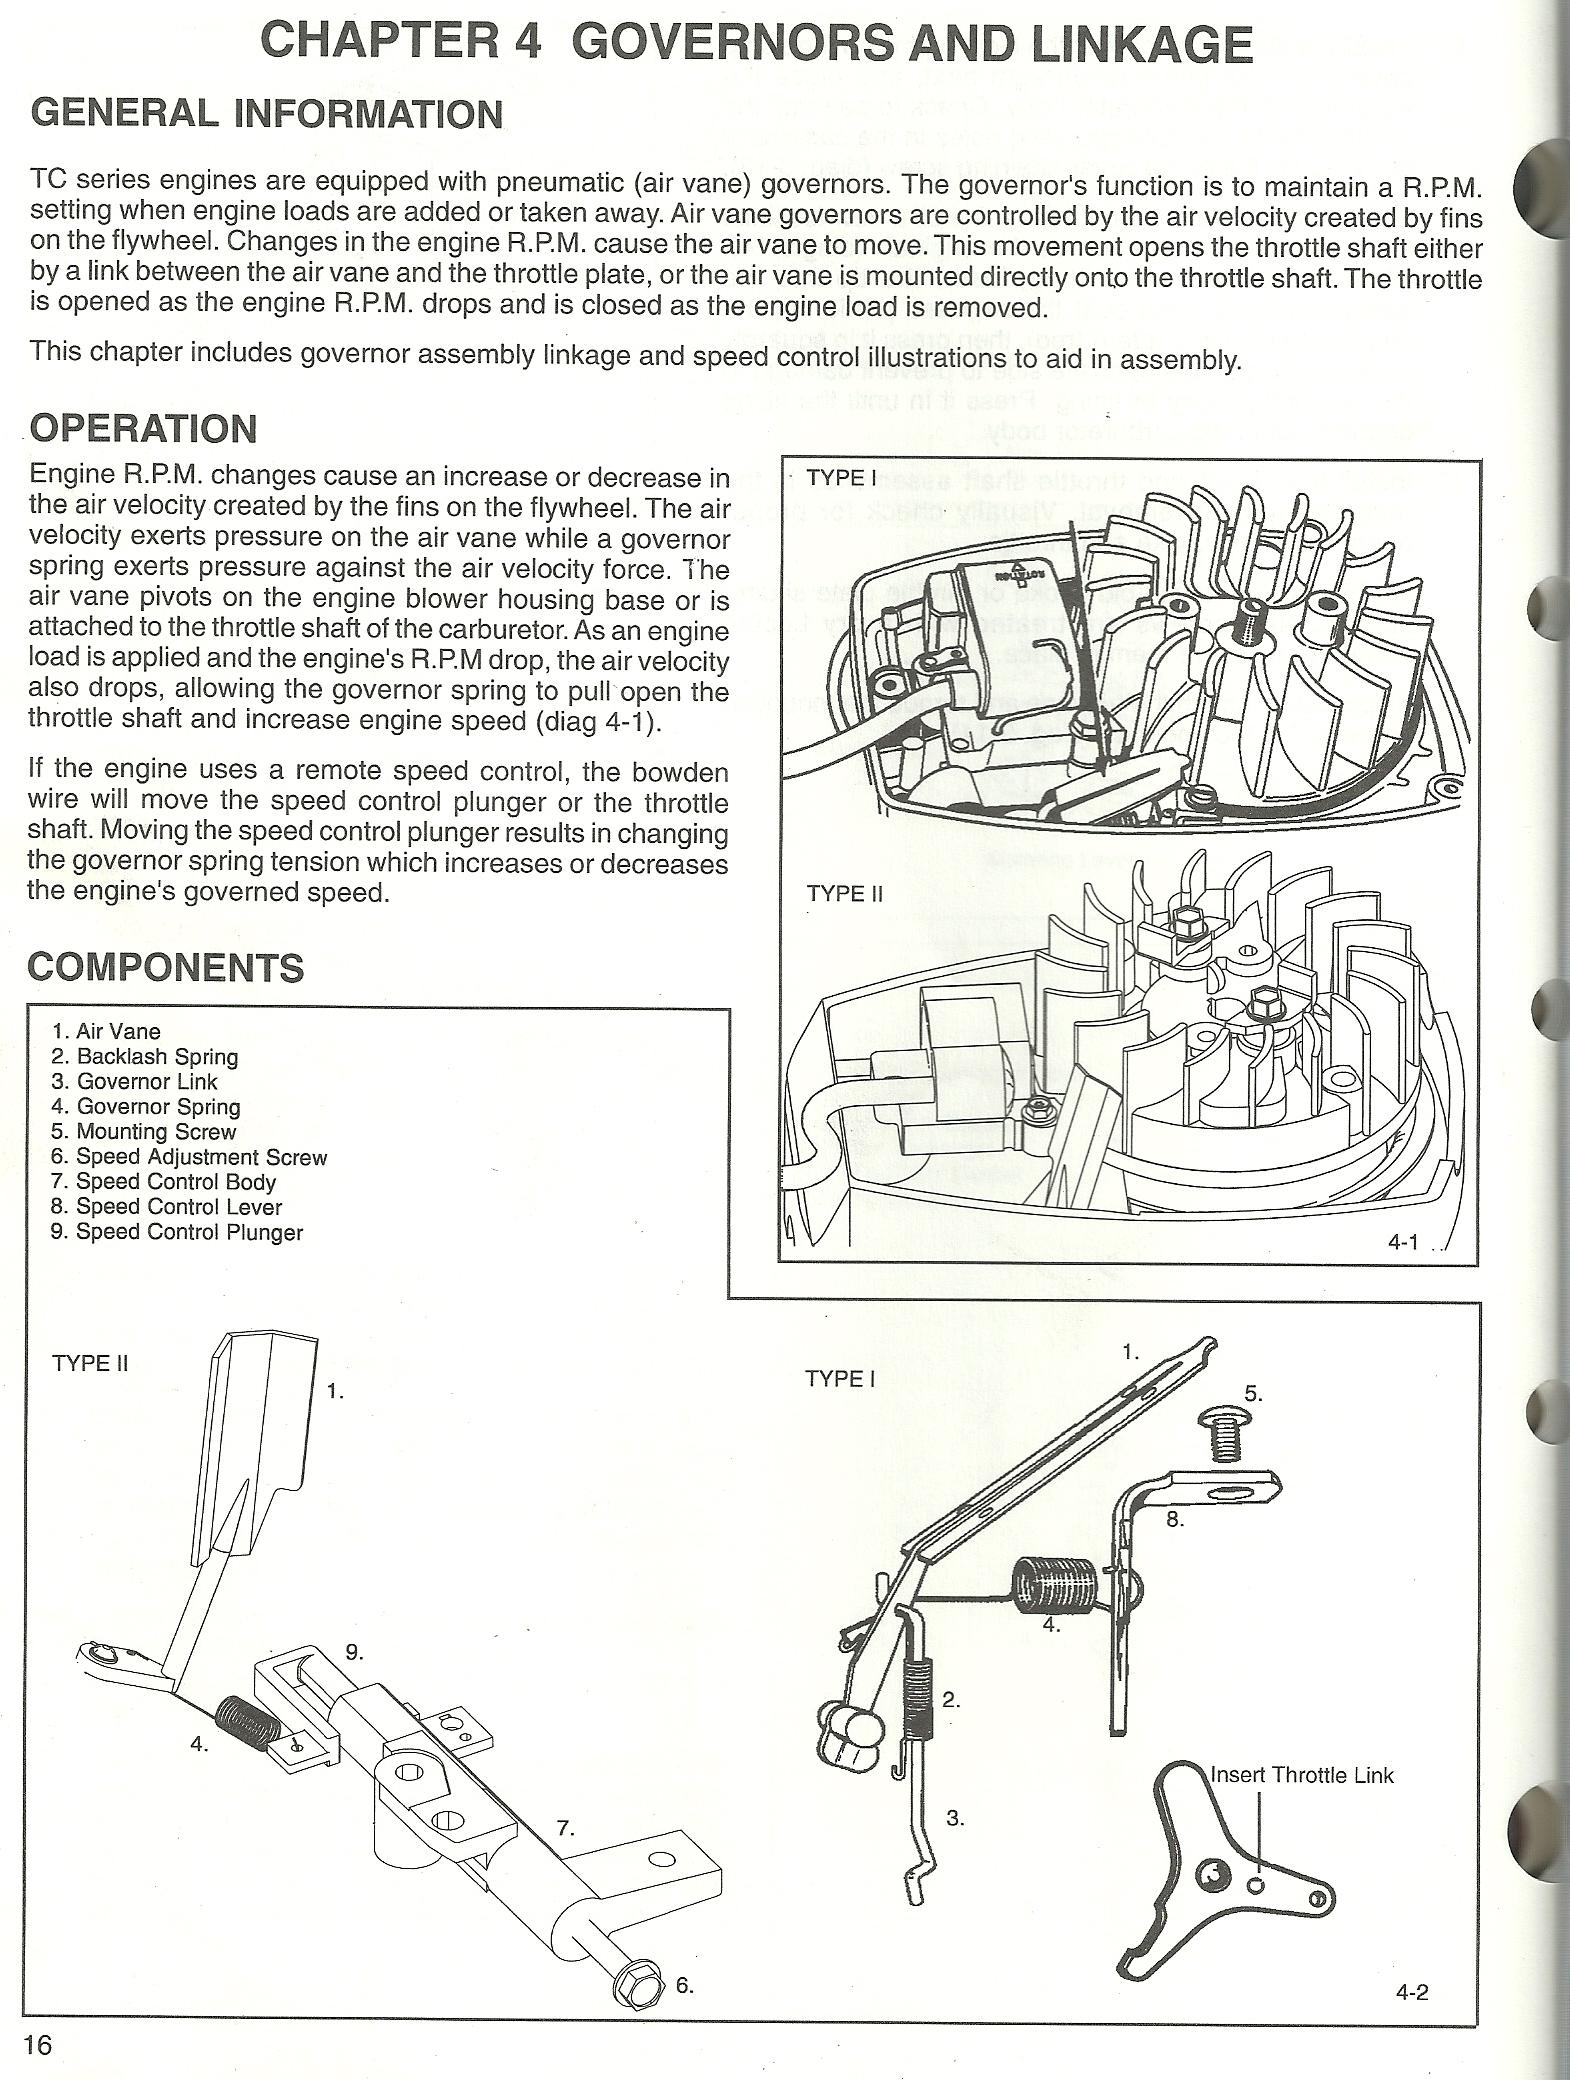 i need a diagram for the carbureter throttle spring setup for graphic